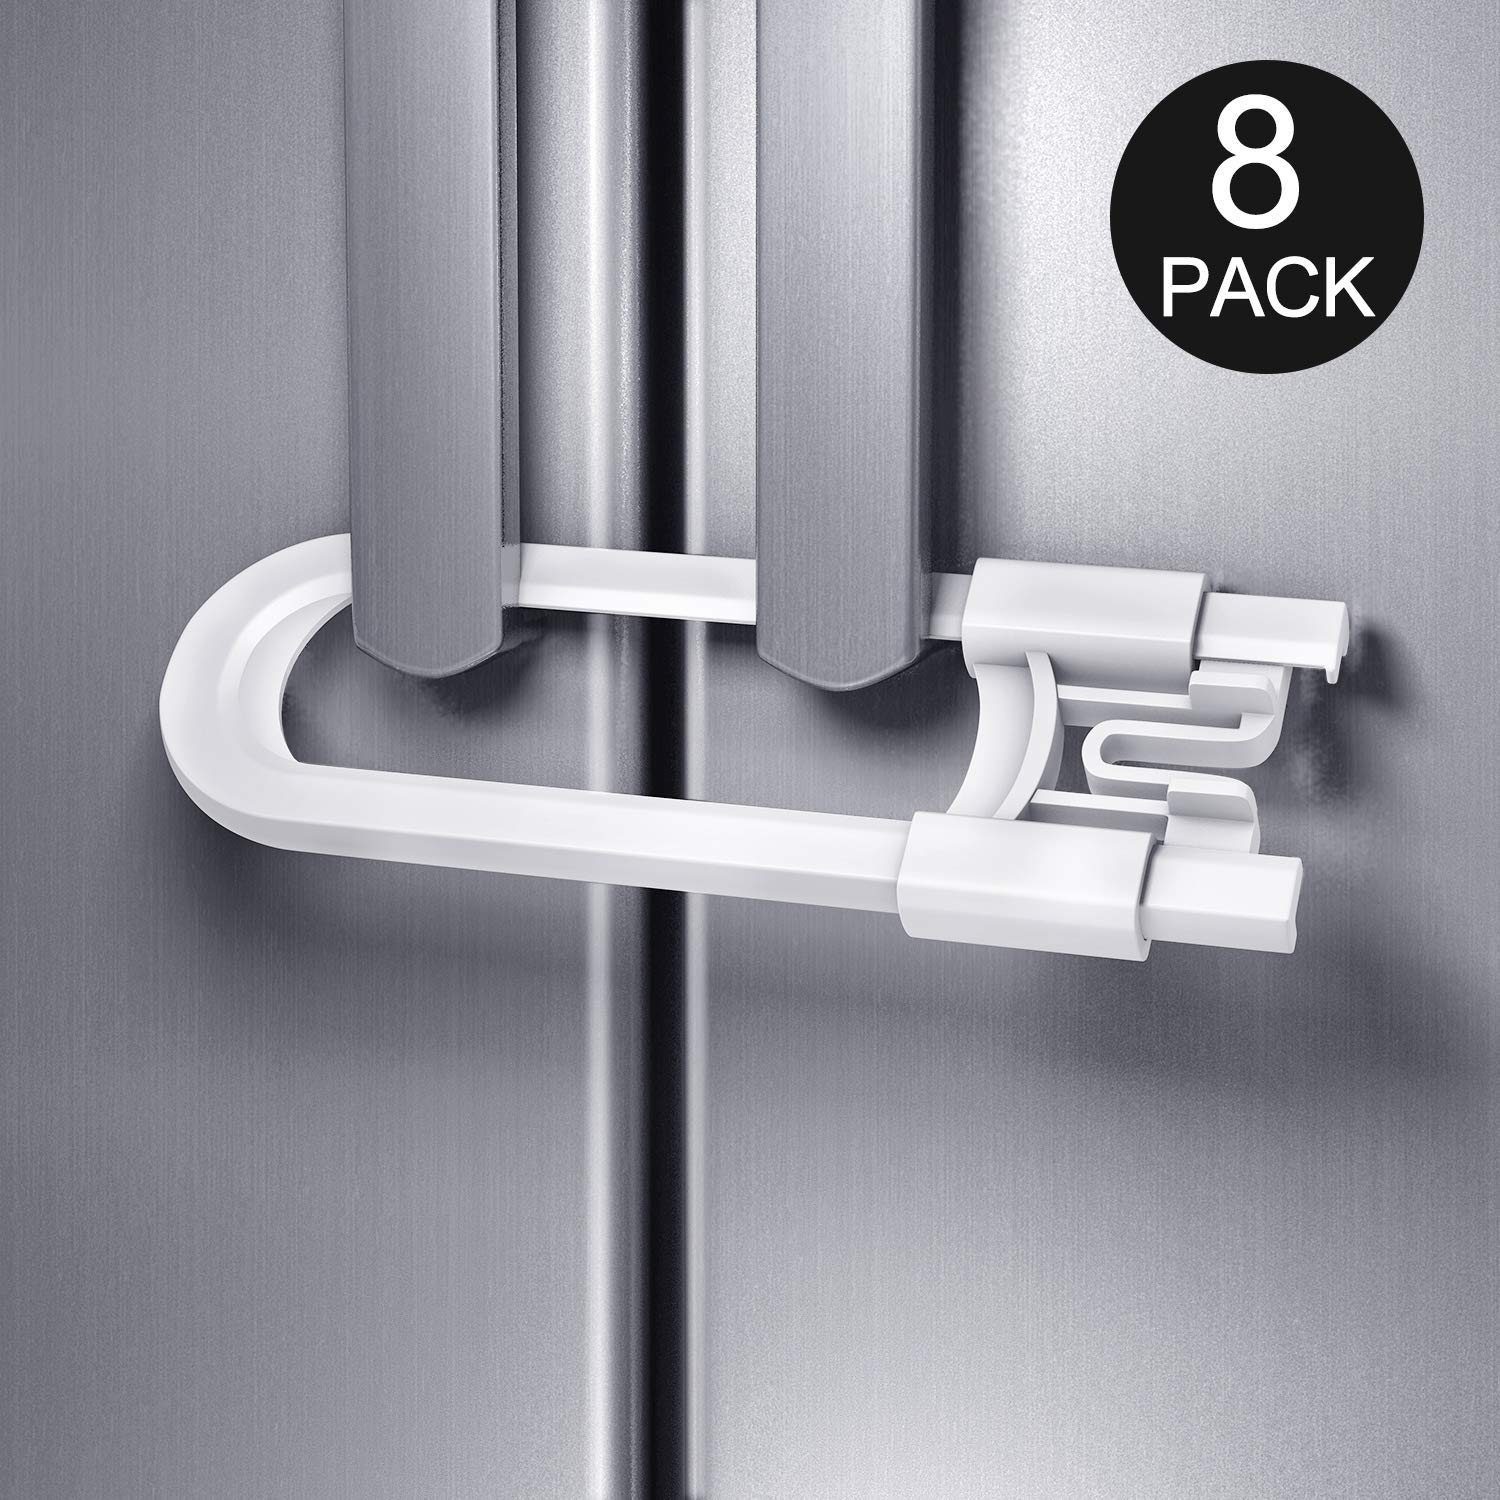 Baby Proofing Cabinet Safety Locks, 4 Pack Child Proof U-Shaped Sliding Cabinet Locks Latches for Knobs and Handles Cynkie